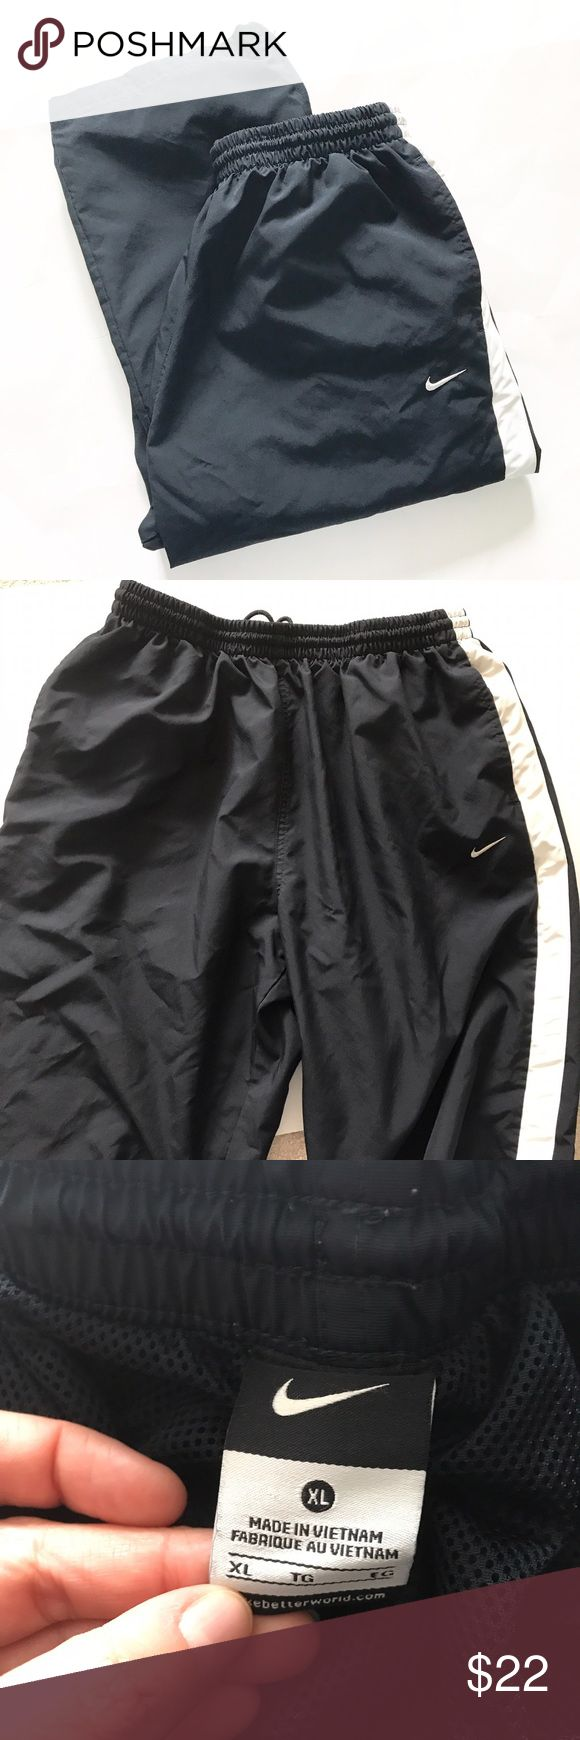 NIKE [men's] Black windbreaker Track Pants Have zippers at ends of legs. Good condition but do have a tiny flaw as pointed out in photo. Not a hole, but defect in fabric. Nike Pants Sweatpants & Joggers